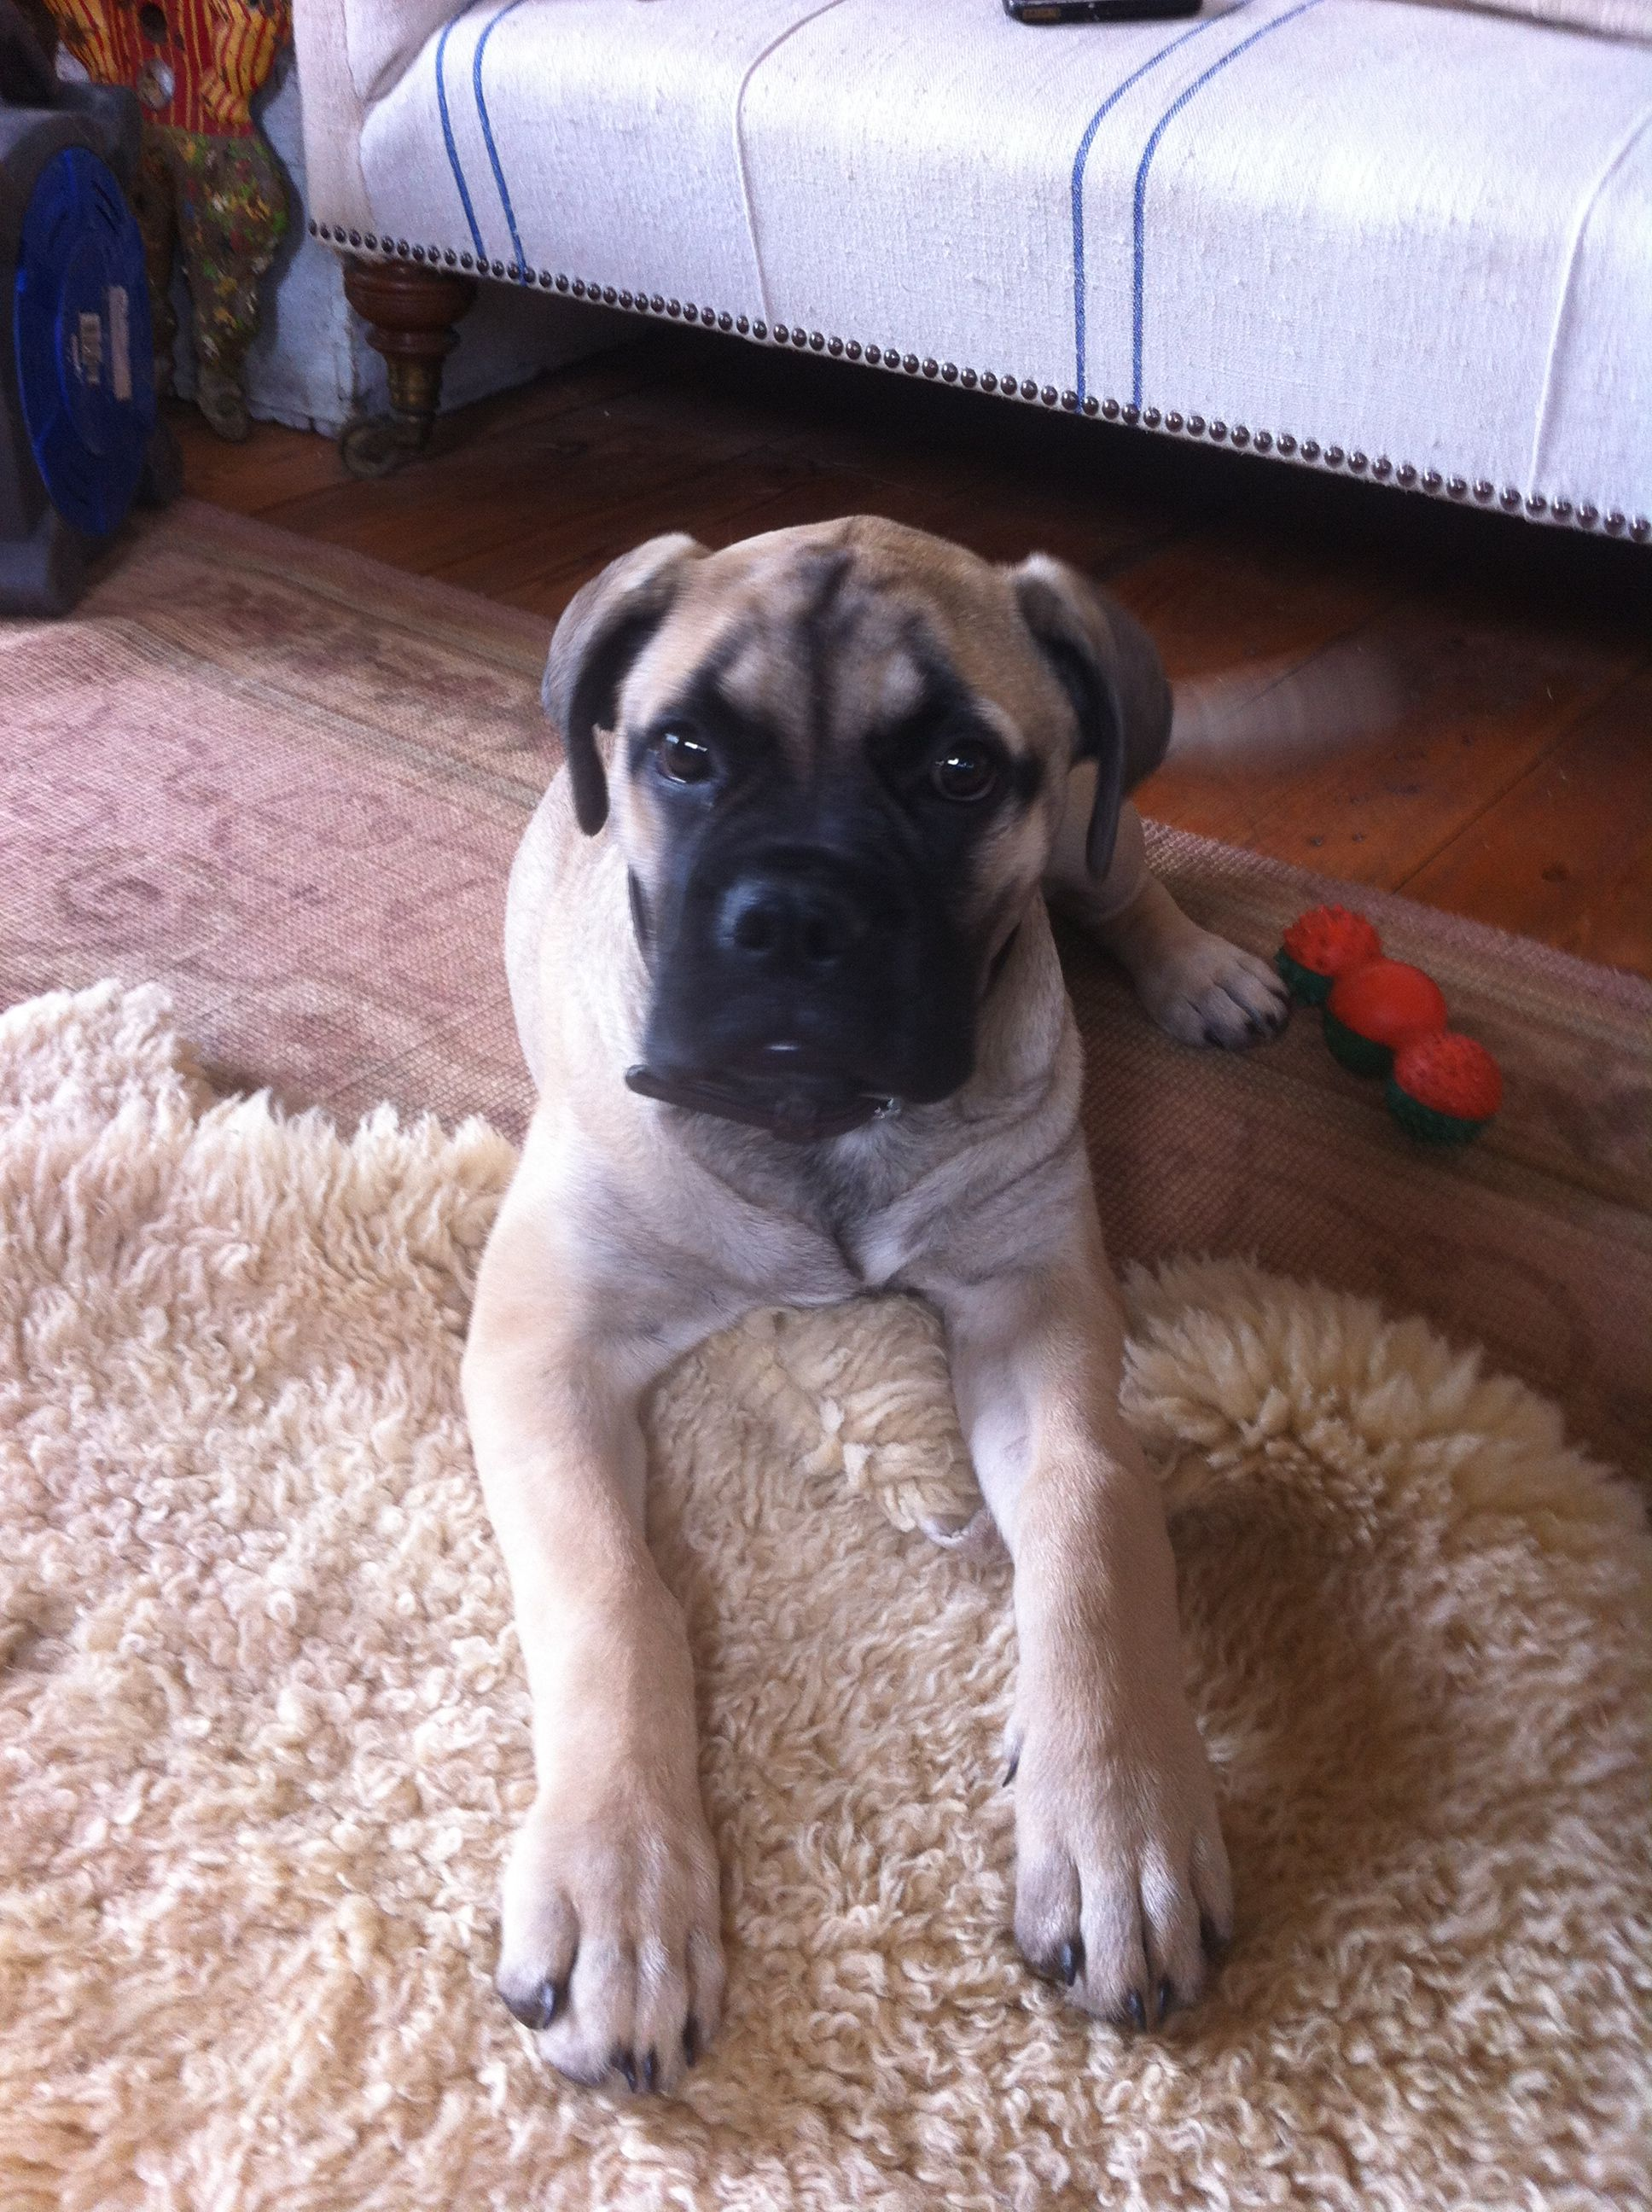 Baba the mastiff on holiday with us at 15 weeks old